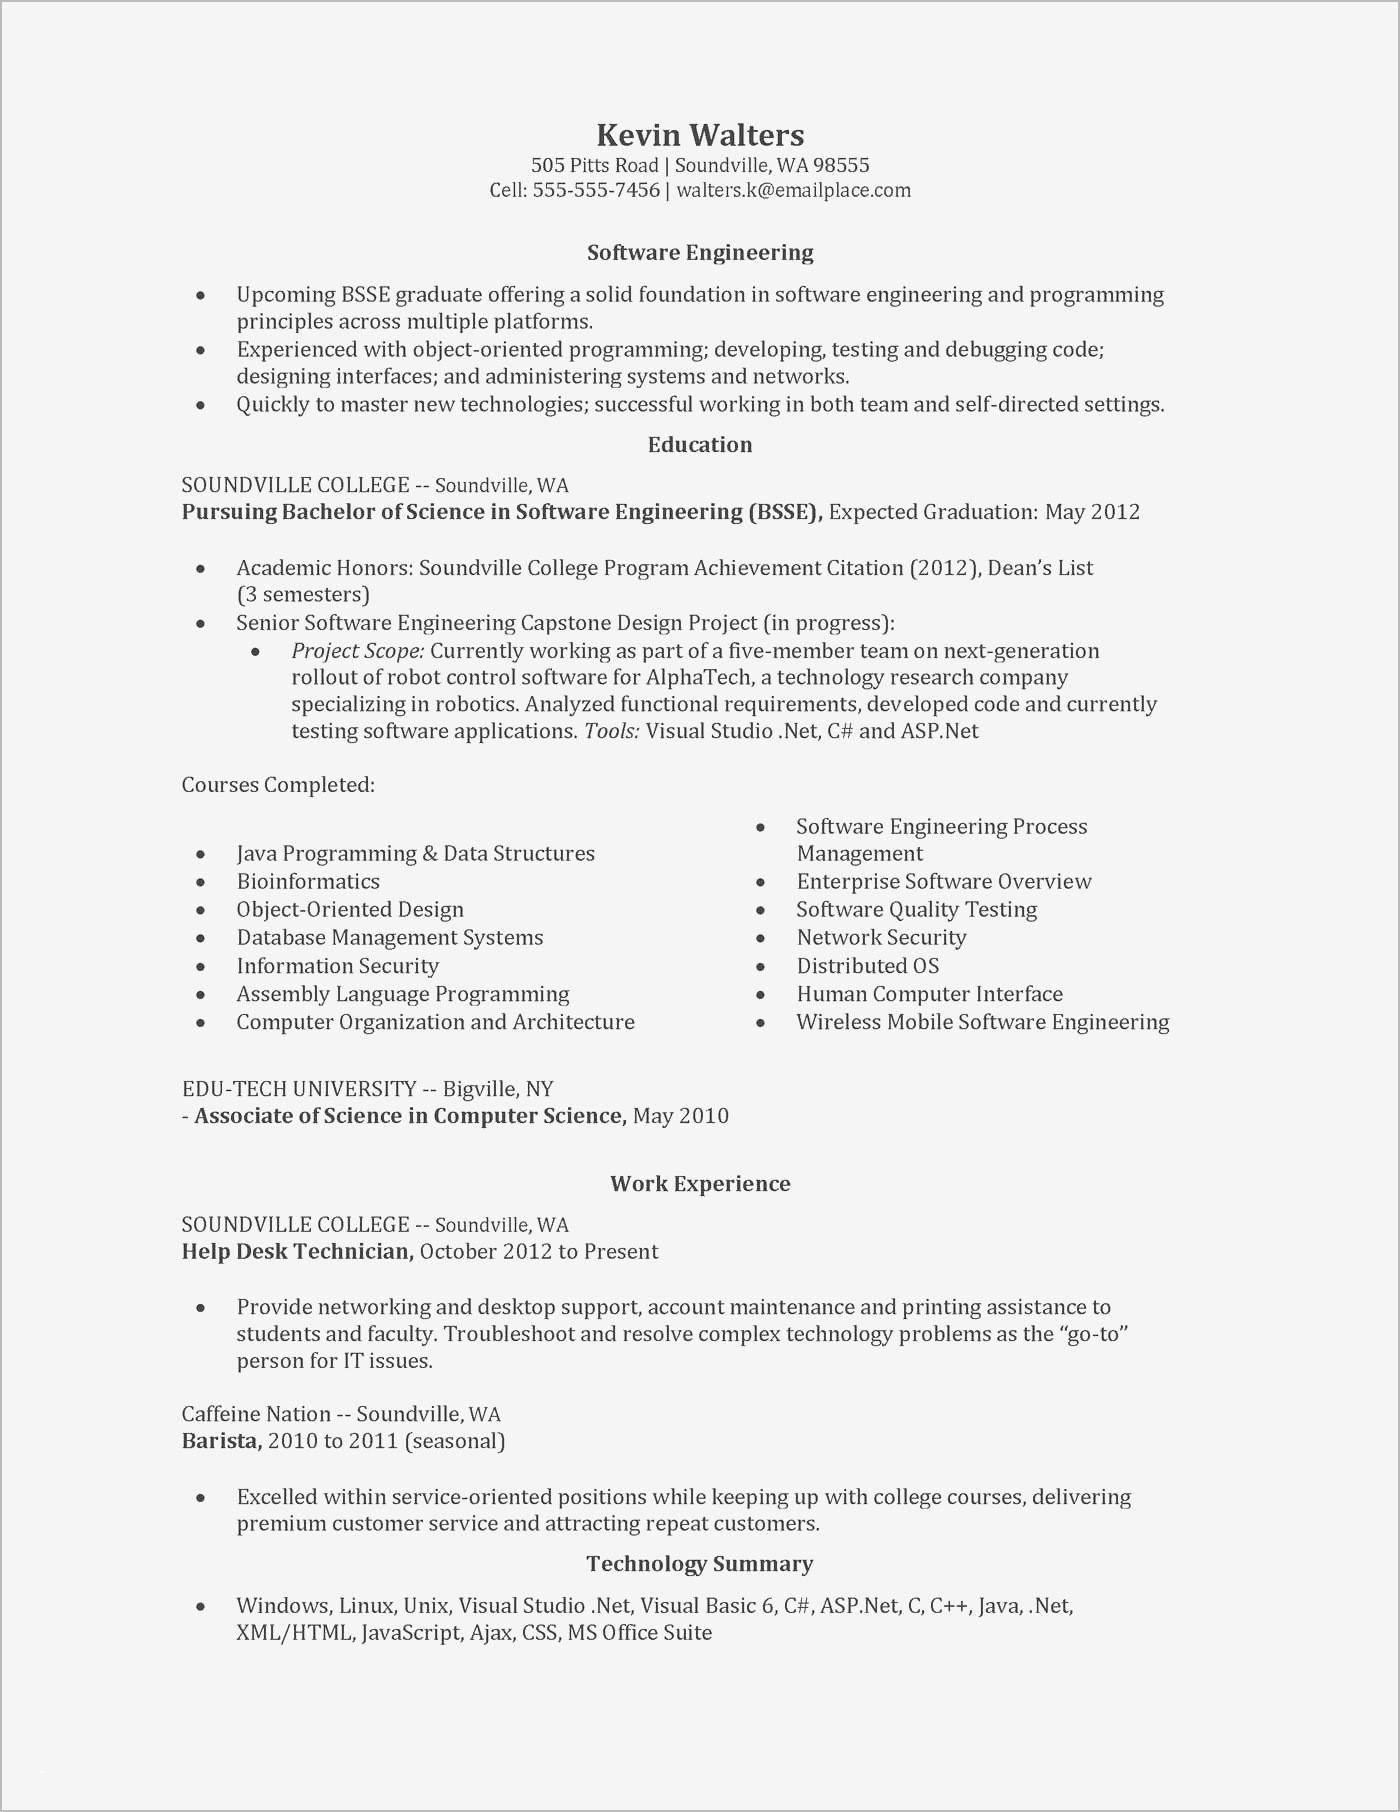 34 Great Entry Level Software Engineer Resume with Pictures